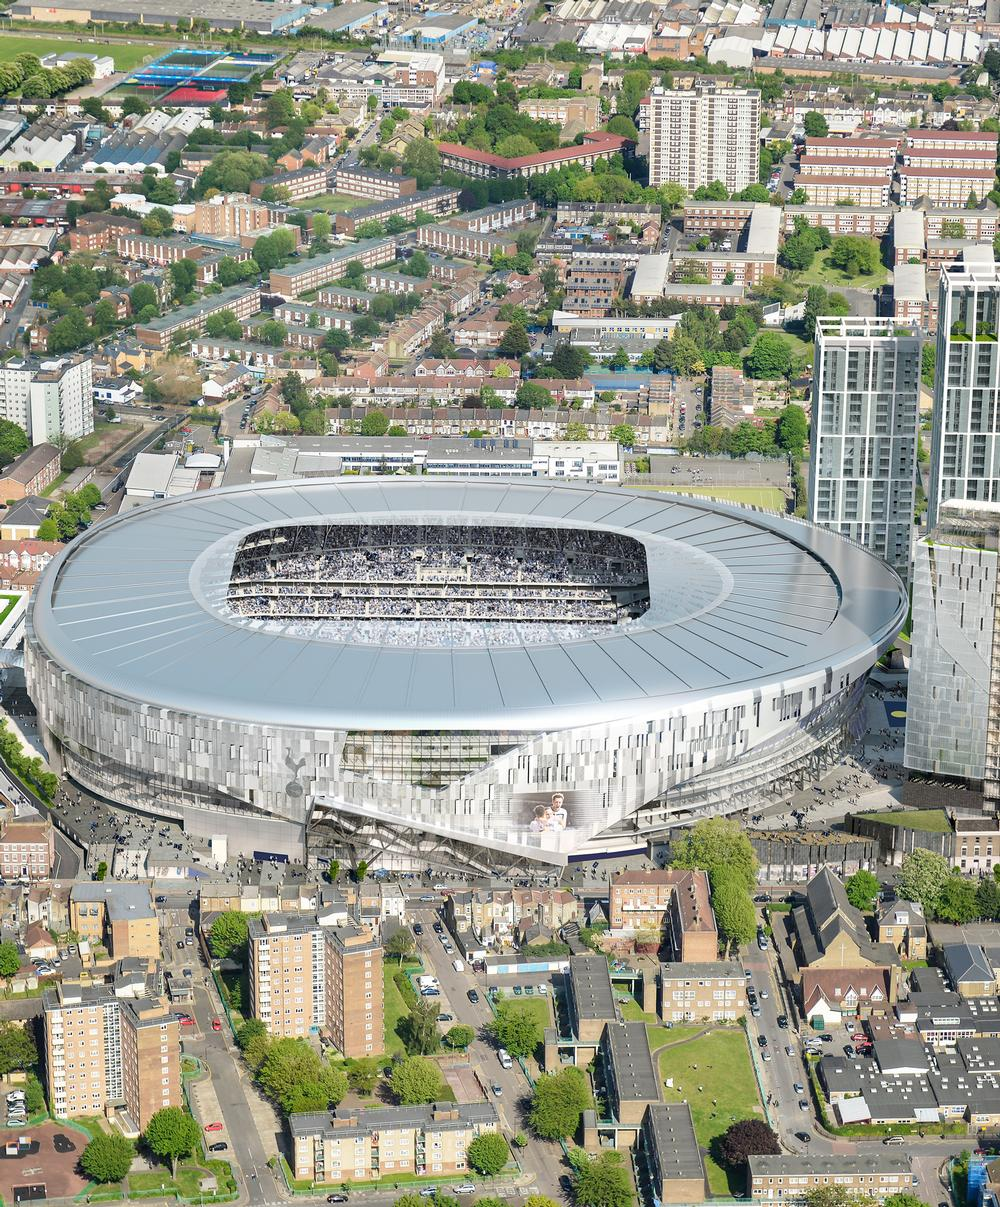 The stadium will anchor a large regeneration initiative in Northumberland Park, North London / populous